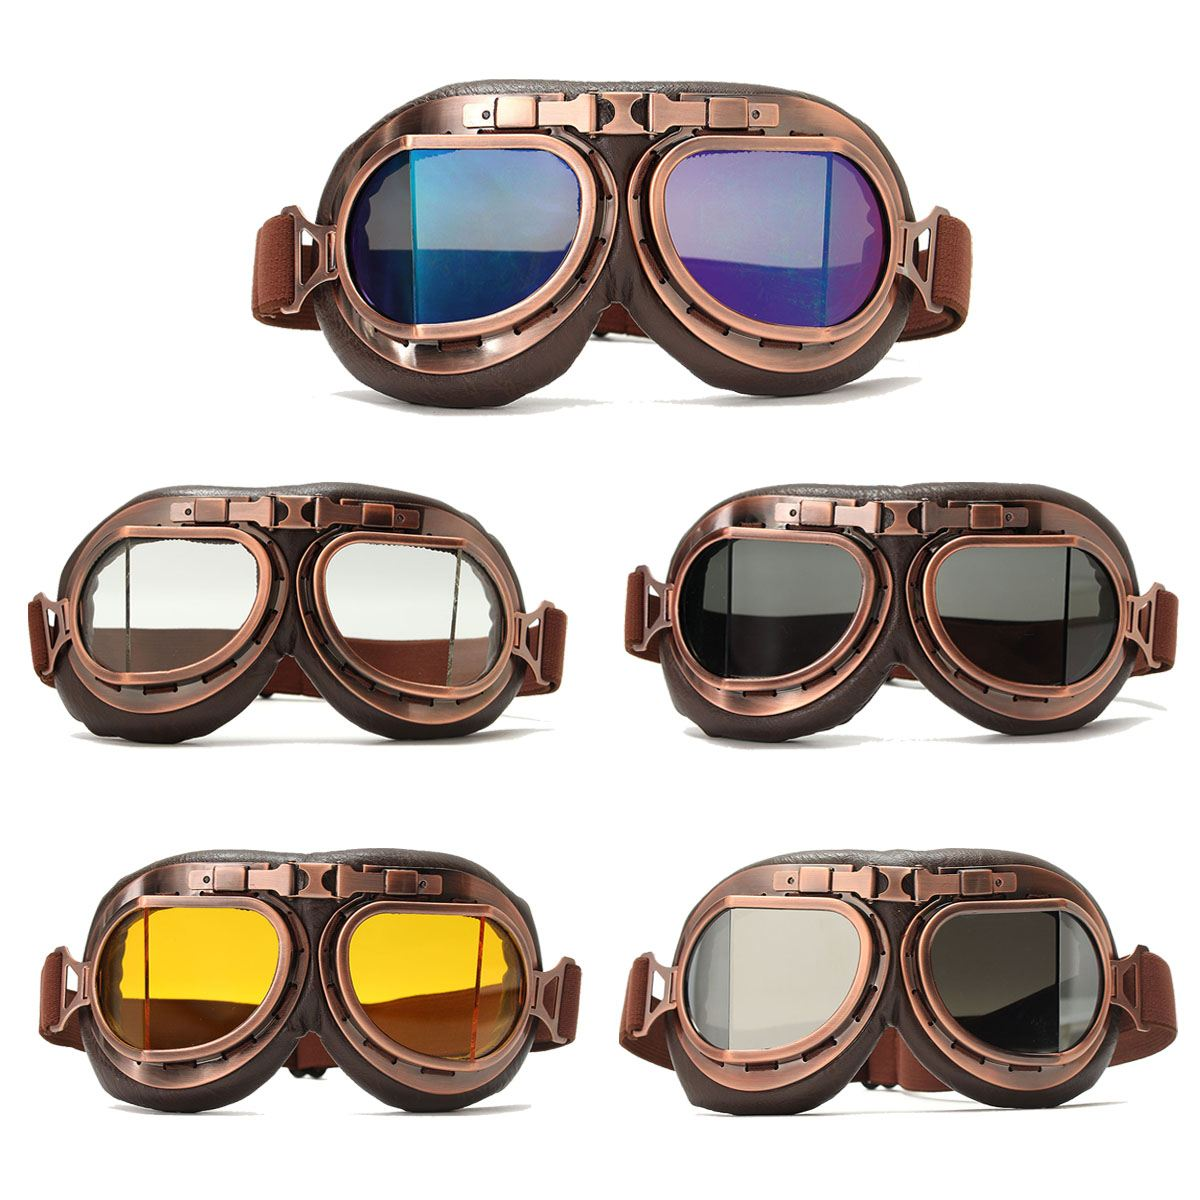 Windproof Vintage Motocycle Cycling Bike Goggles Retro Riding Glasses Motorbike Helmet Glasses Eyewear For Harley Cafe Racer